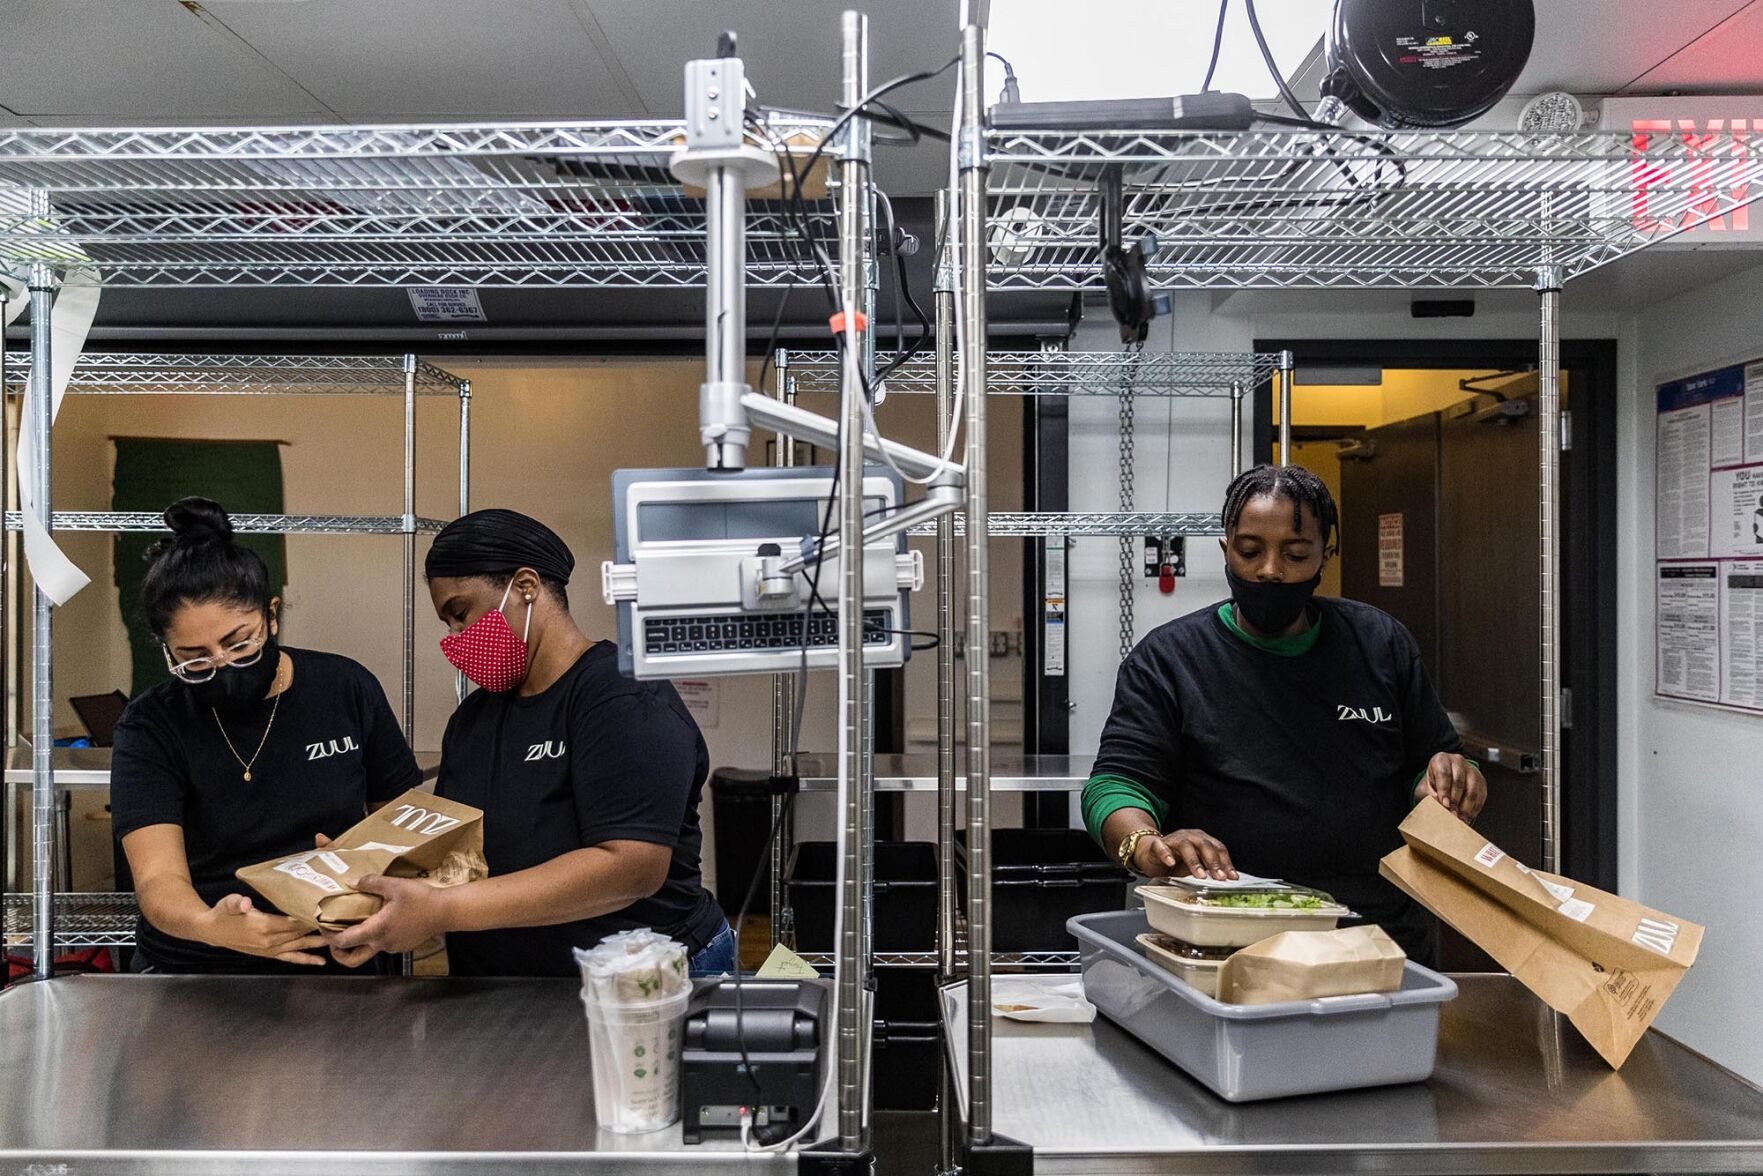 news-journal.com - Laura Reiley The Washington Post - Pandemic surge in food delivery has given rise to one of only growth areas in restaurant industry